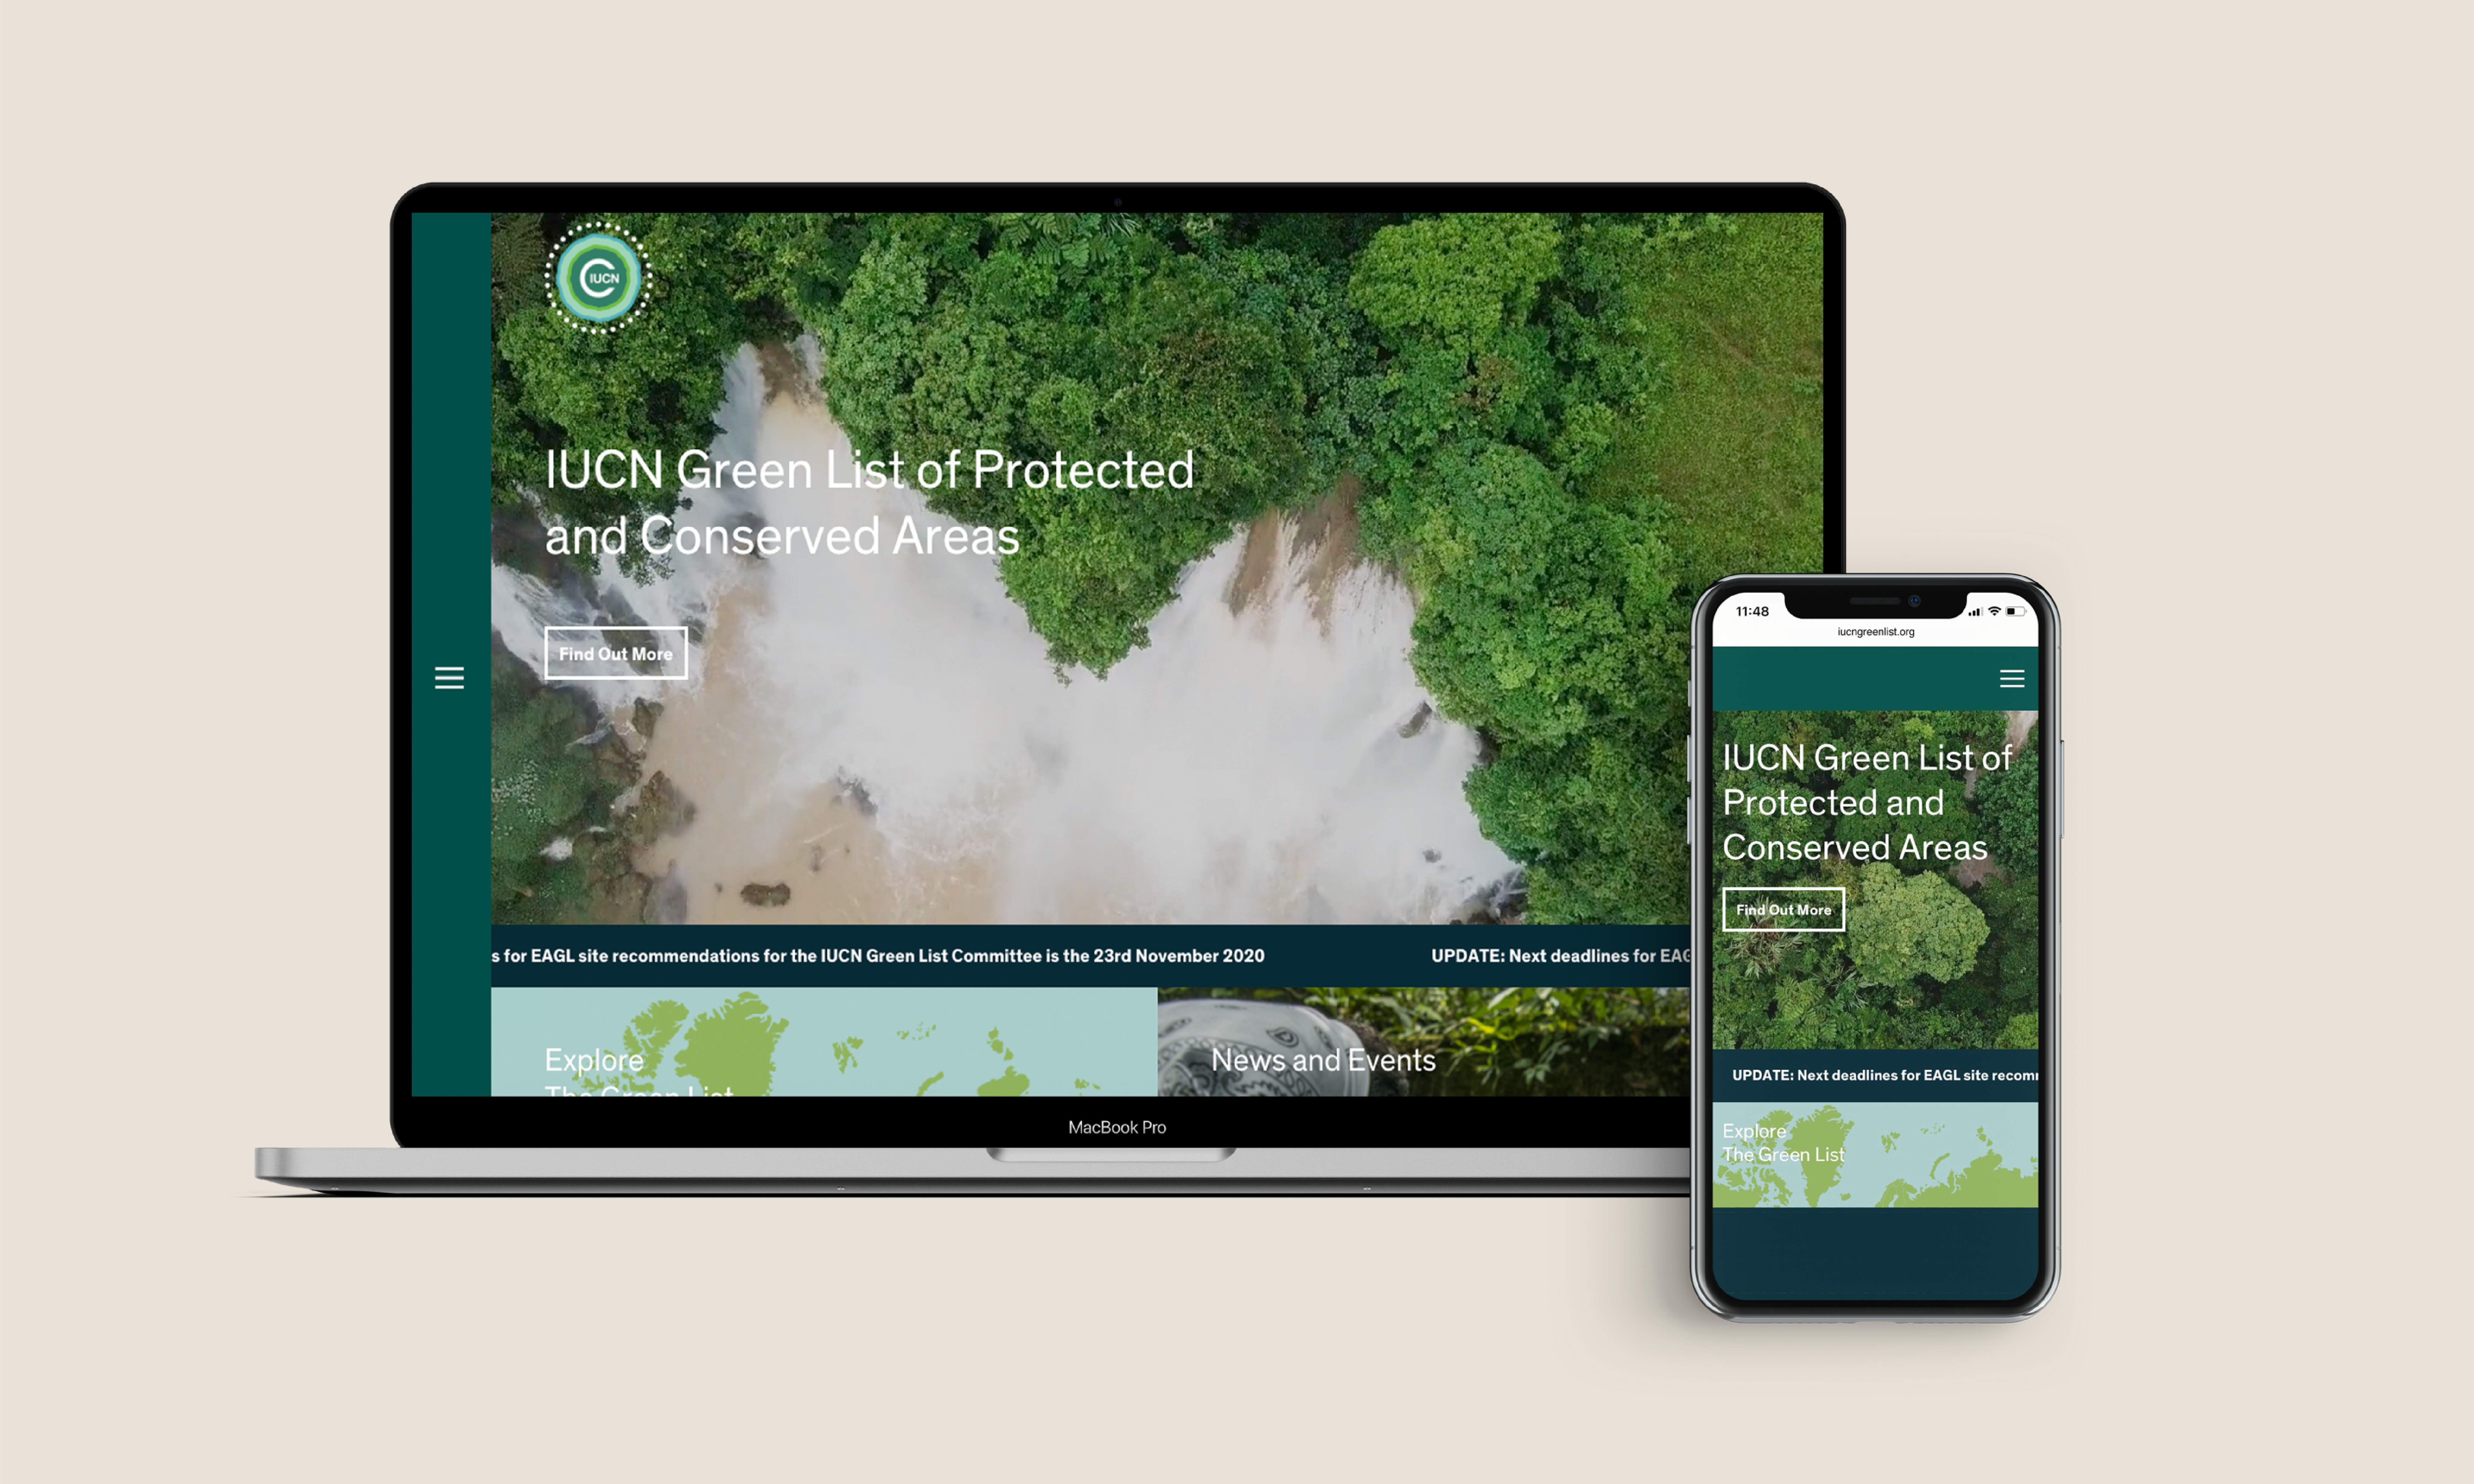 Cover image: IUCN Green List website